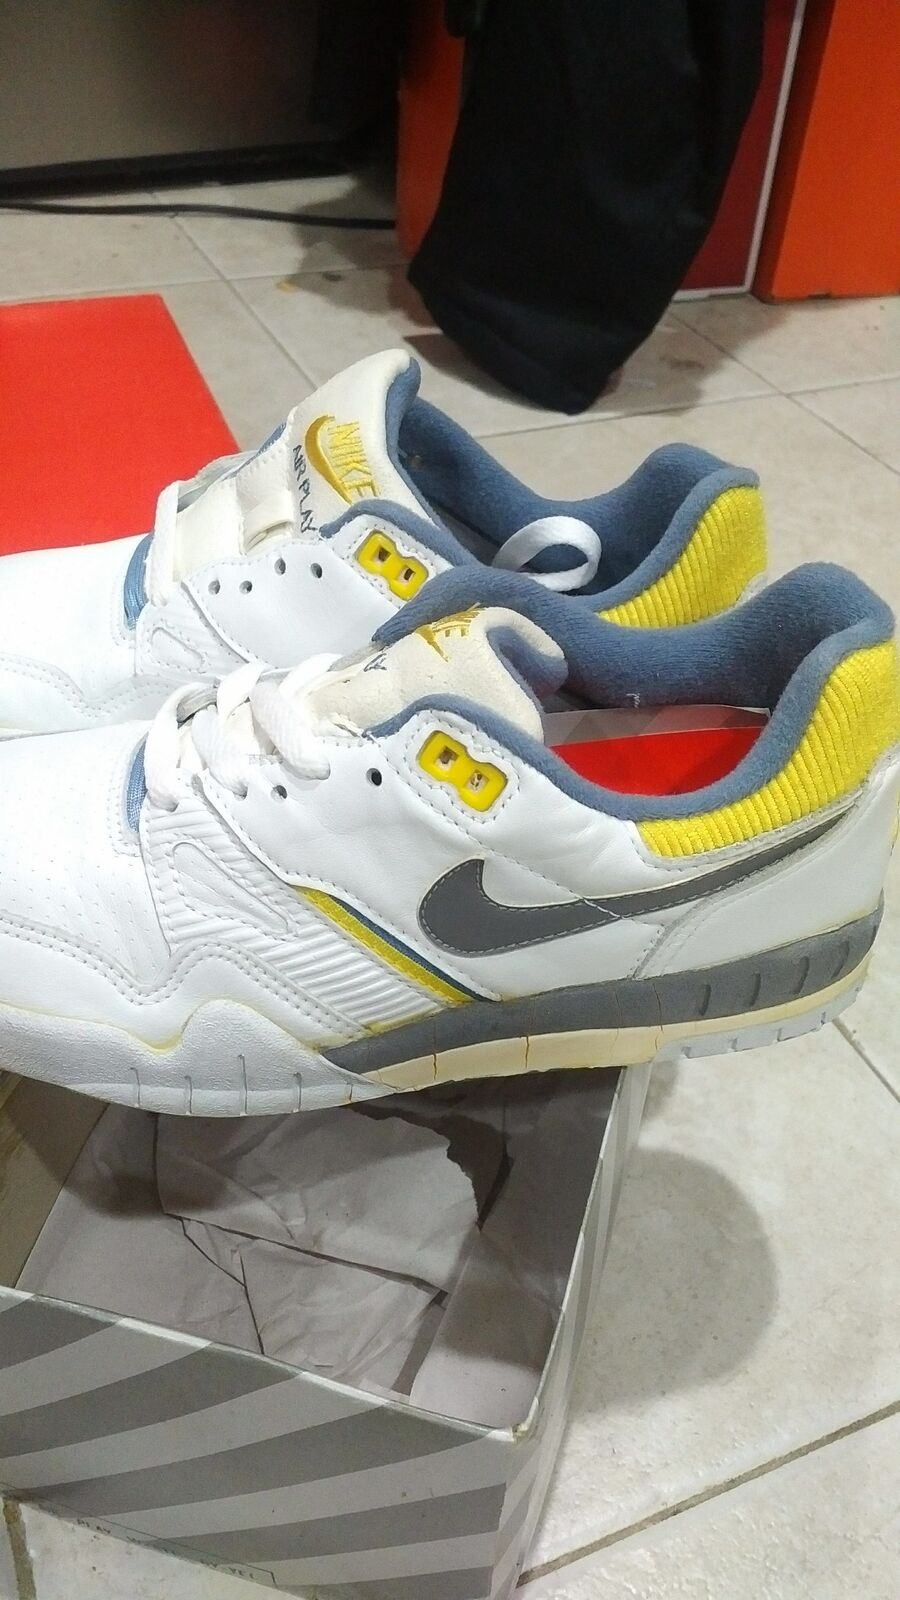 Vintage Nike Air Play White/Gray/Yellow Sneakers Shoes Men size 7 The most popular shoes for men and women